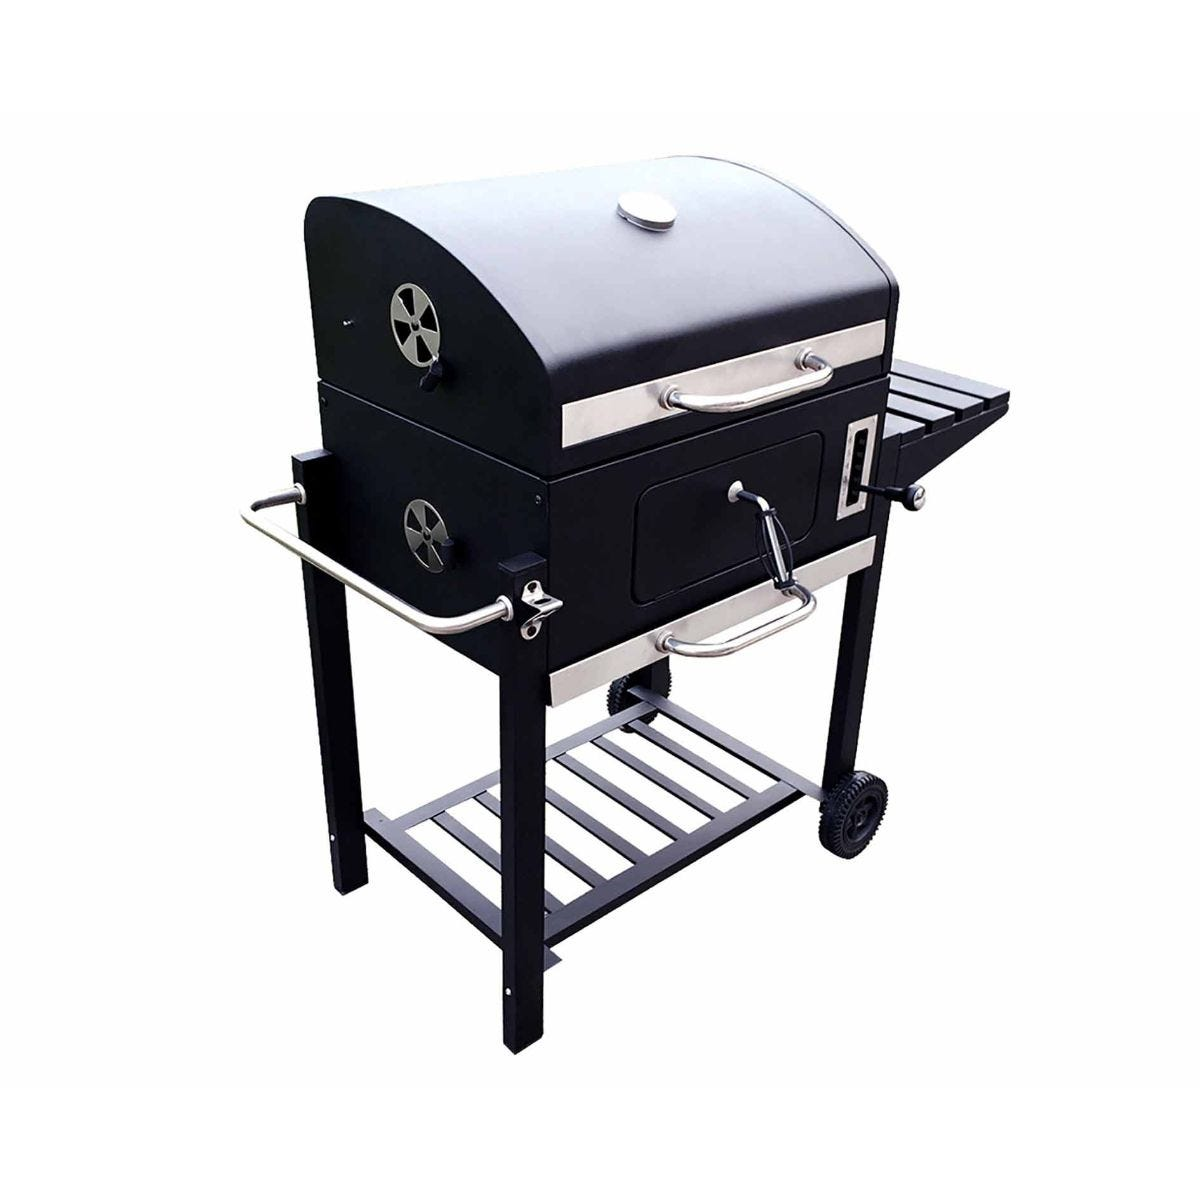 Image of Charles Bentley Large American Grill Charcoal BBQ, Charcoal